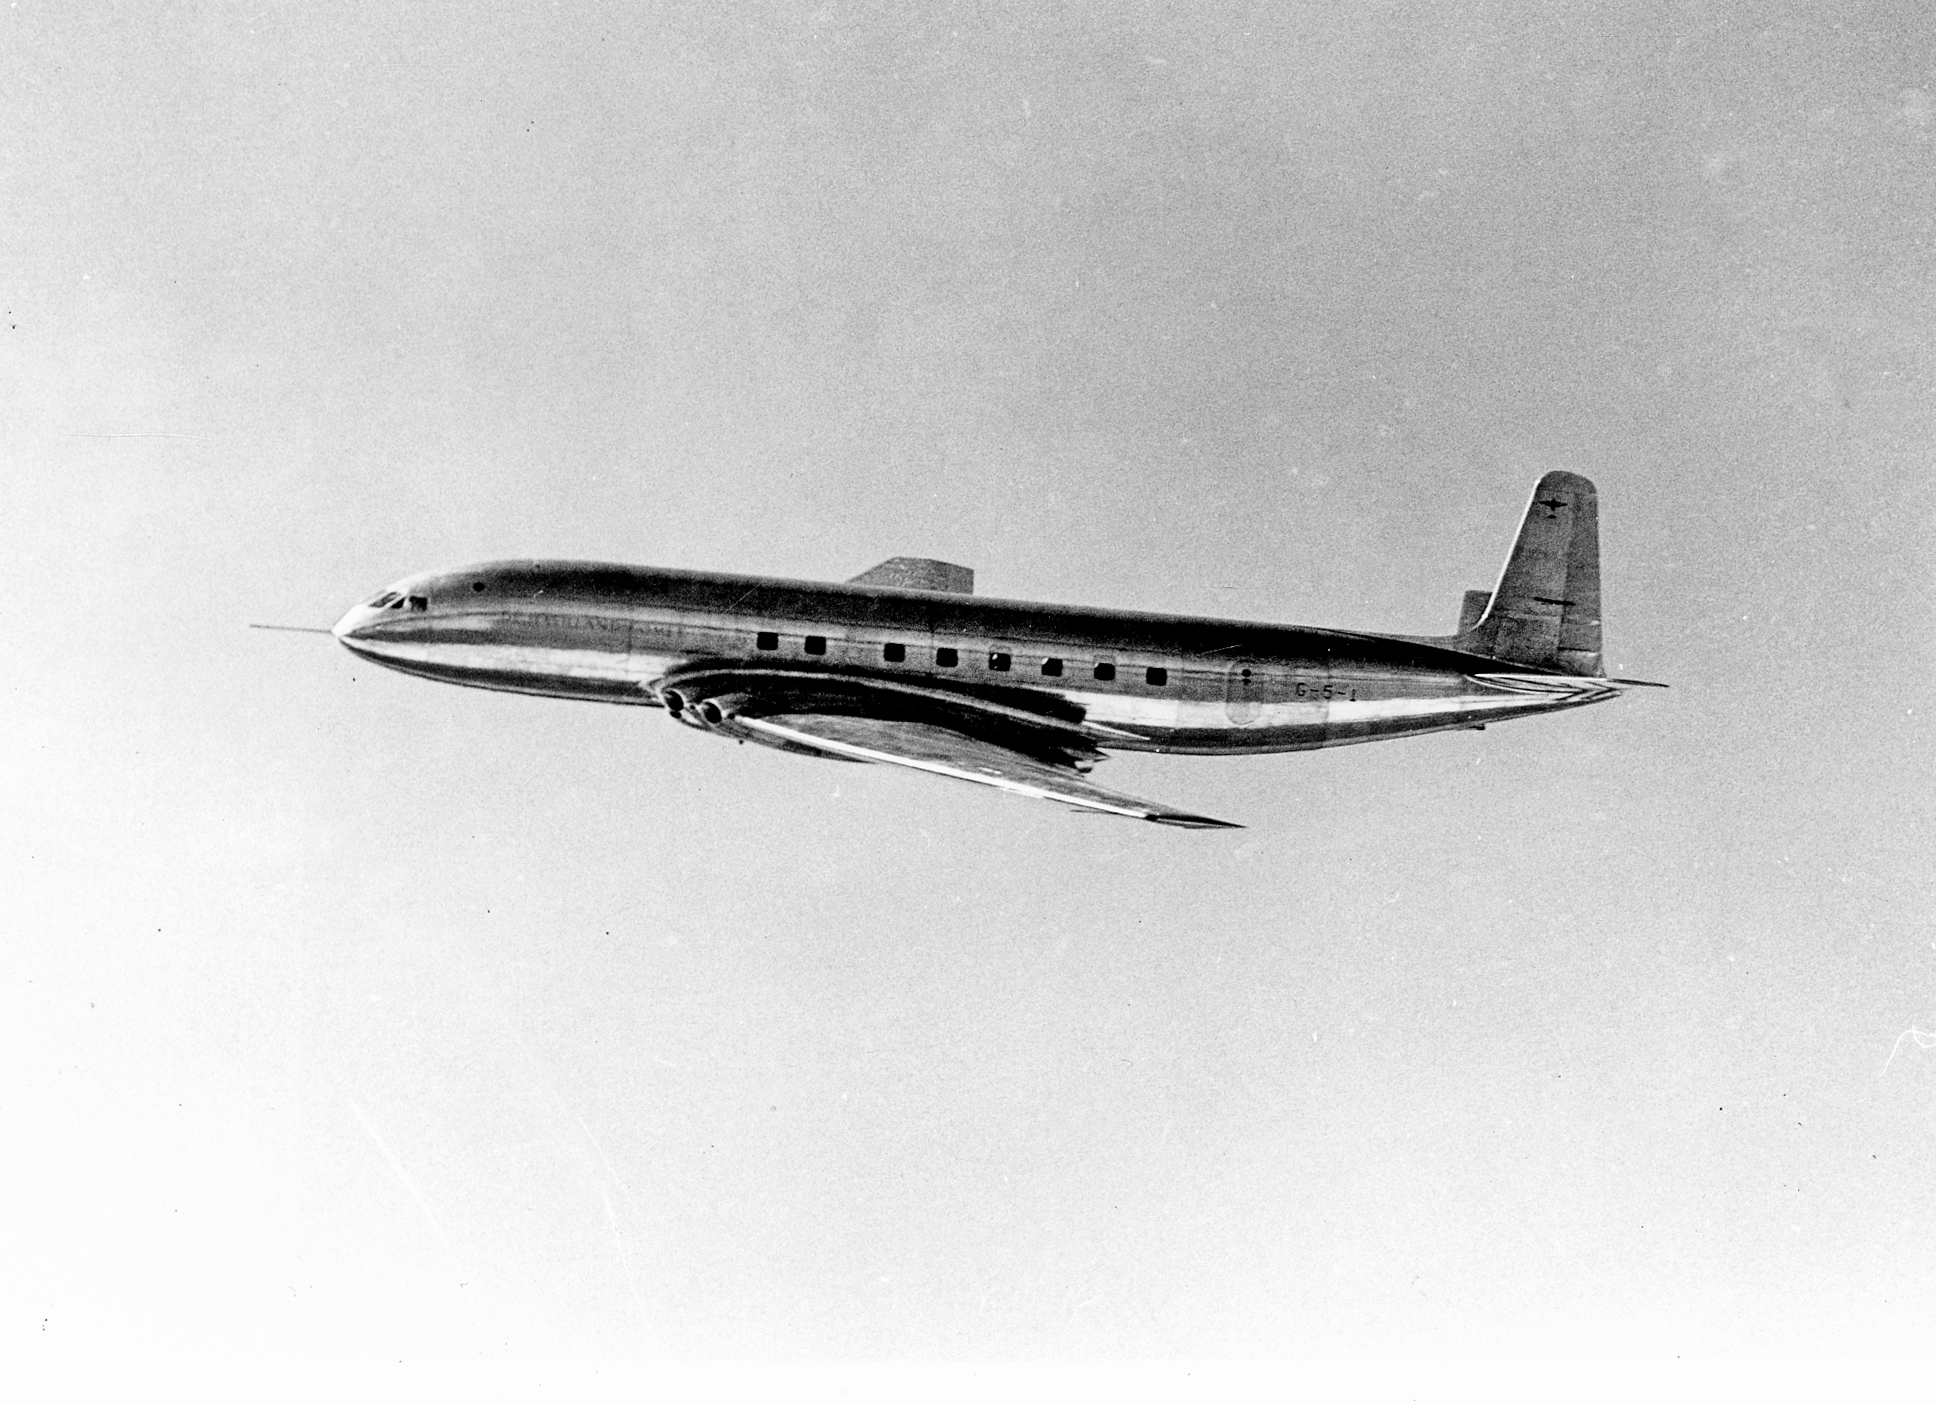 comet-2-c-FlightGlobal archive